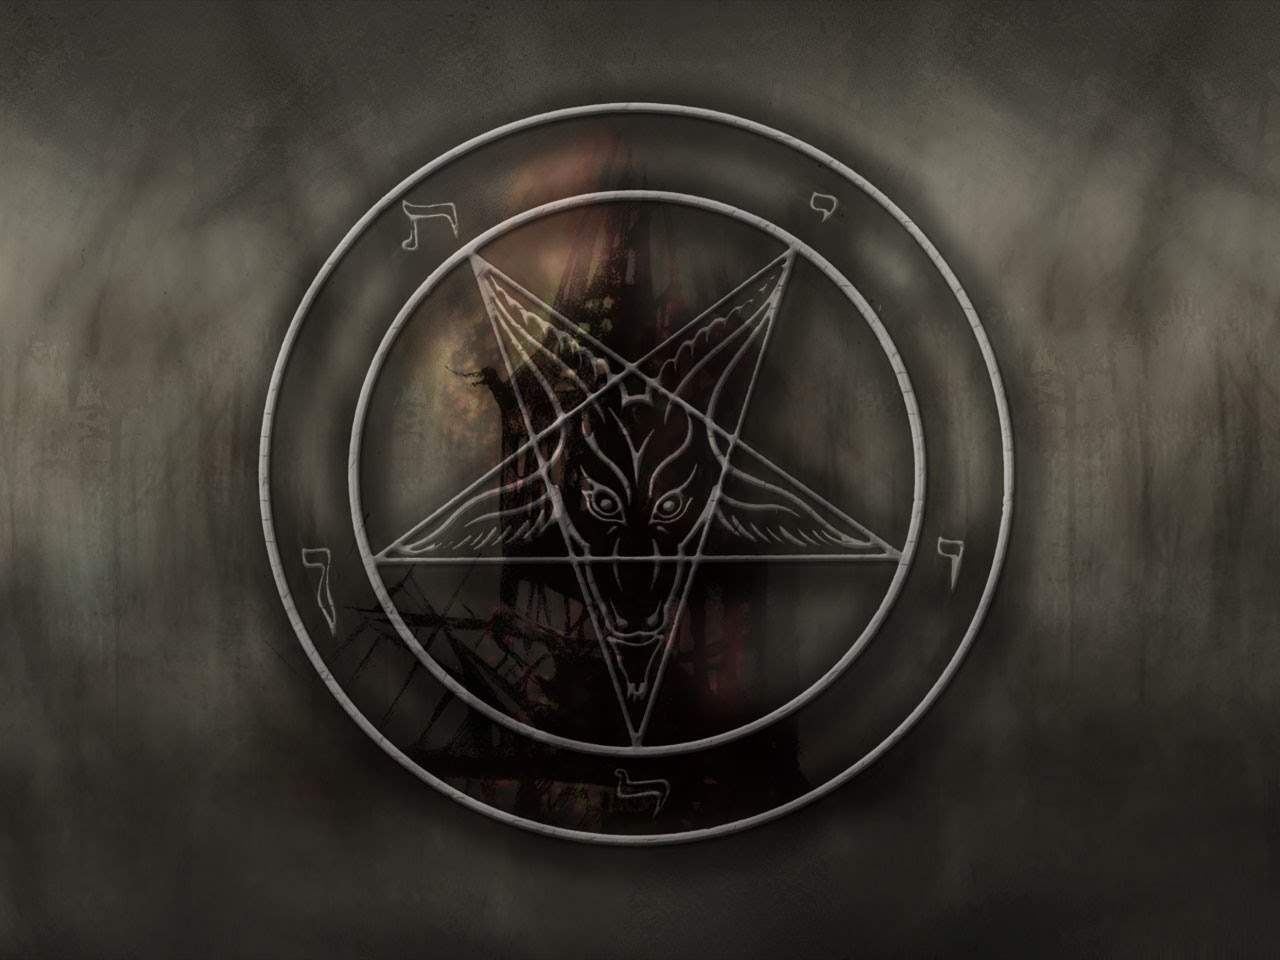 203 Occult HD Wallpapers | Backgrounds - Wallpaper Abyss